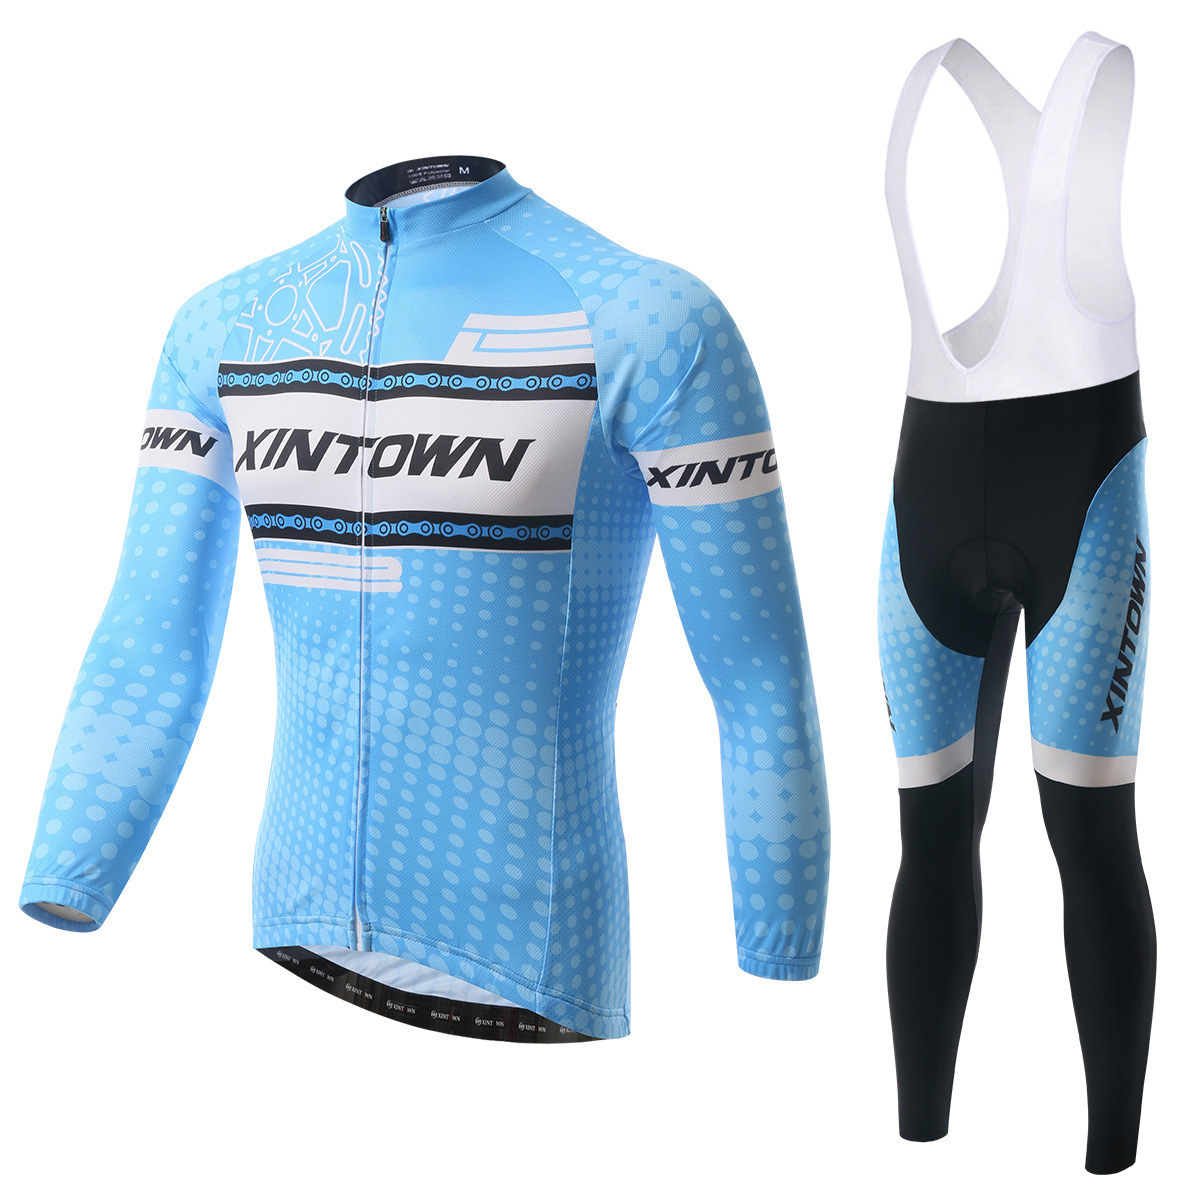 XINTOWN BIB Sets Winter Thermal Fleece Ale Cycling Jersey Set Men Mtb Bike Clothes Long Sleeve Bicycle Cycling Clothing xintown new 2018 spring cycling jersey set long sleeve 3d gel padded sets bike clothing mtb protective wear cycling clothes sets